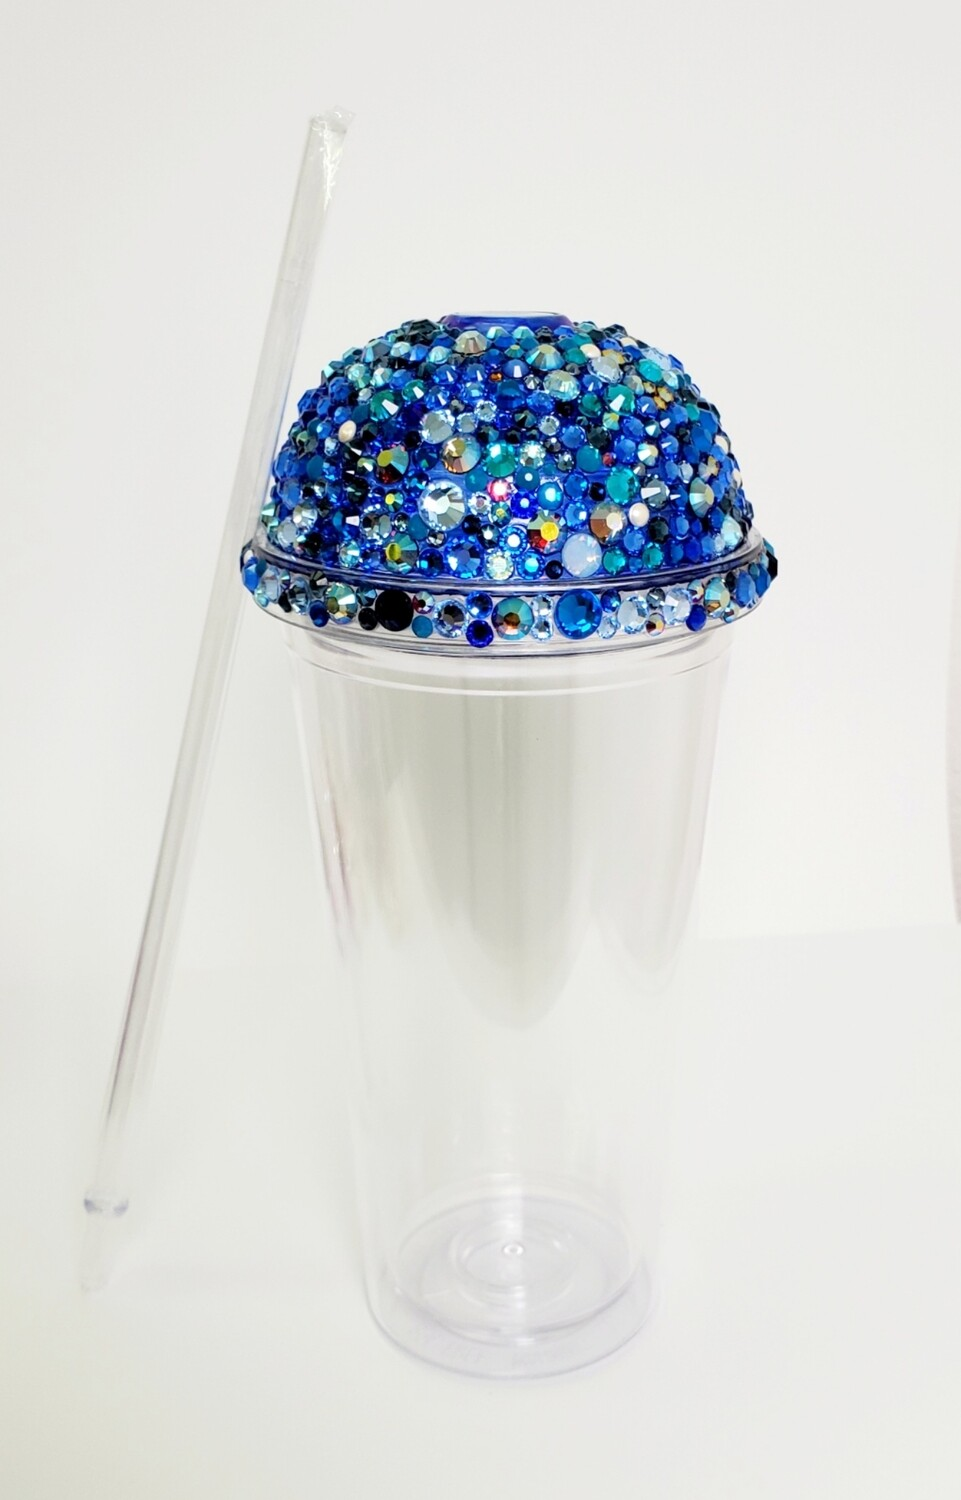 20oz Swarovski Crystal, Dome Lid, with CLEAR Cup and Straw. Blue Mix